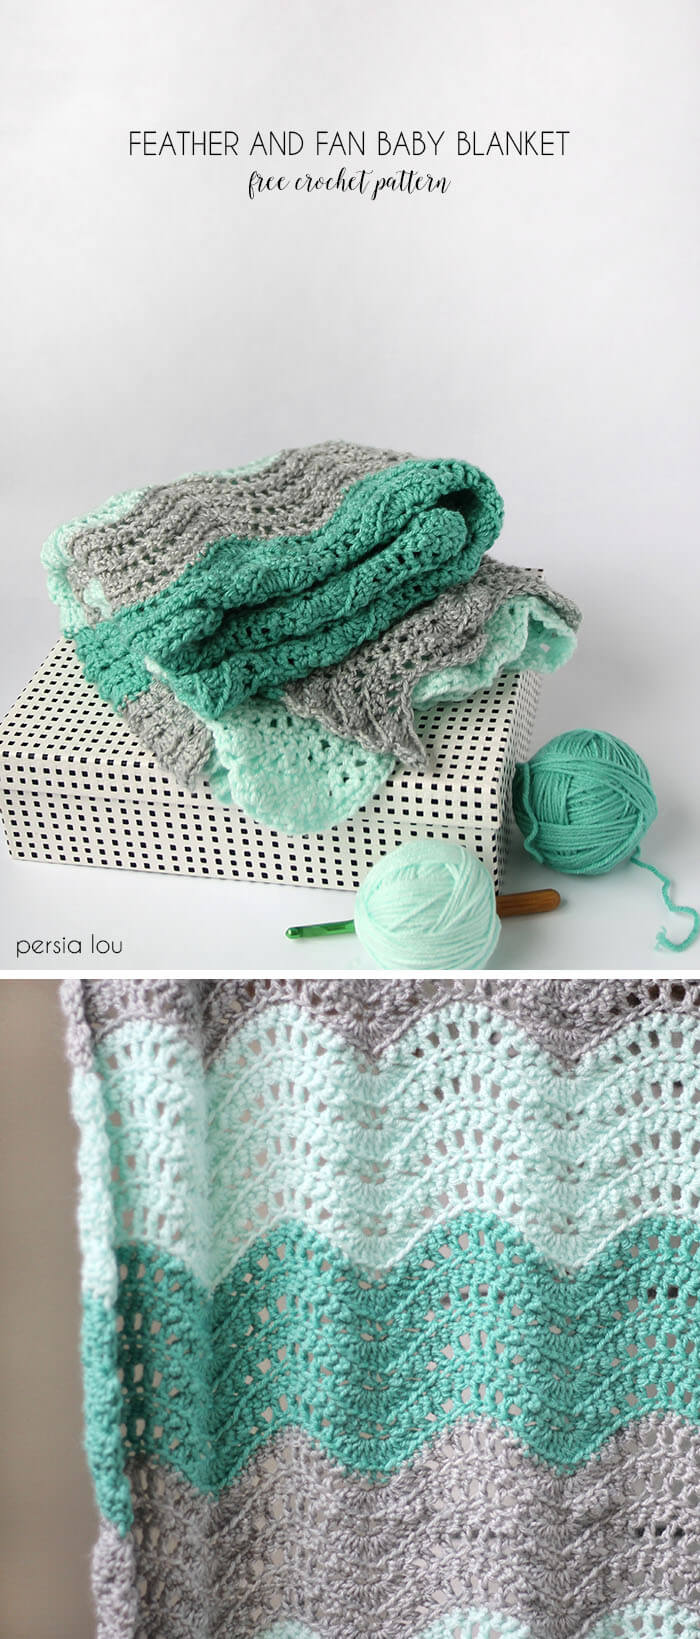 fc2e07c65 Crochet Feather and Fan Baby Blanket - Free Pattern - Persia Lou